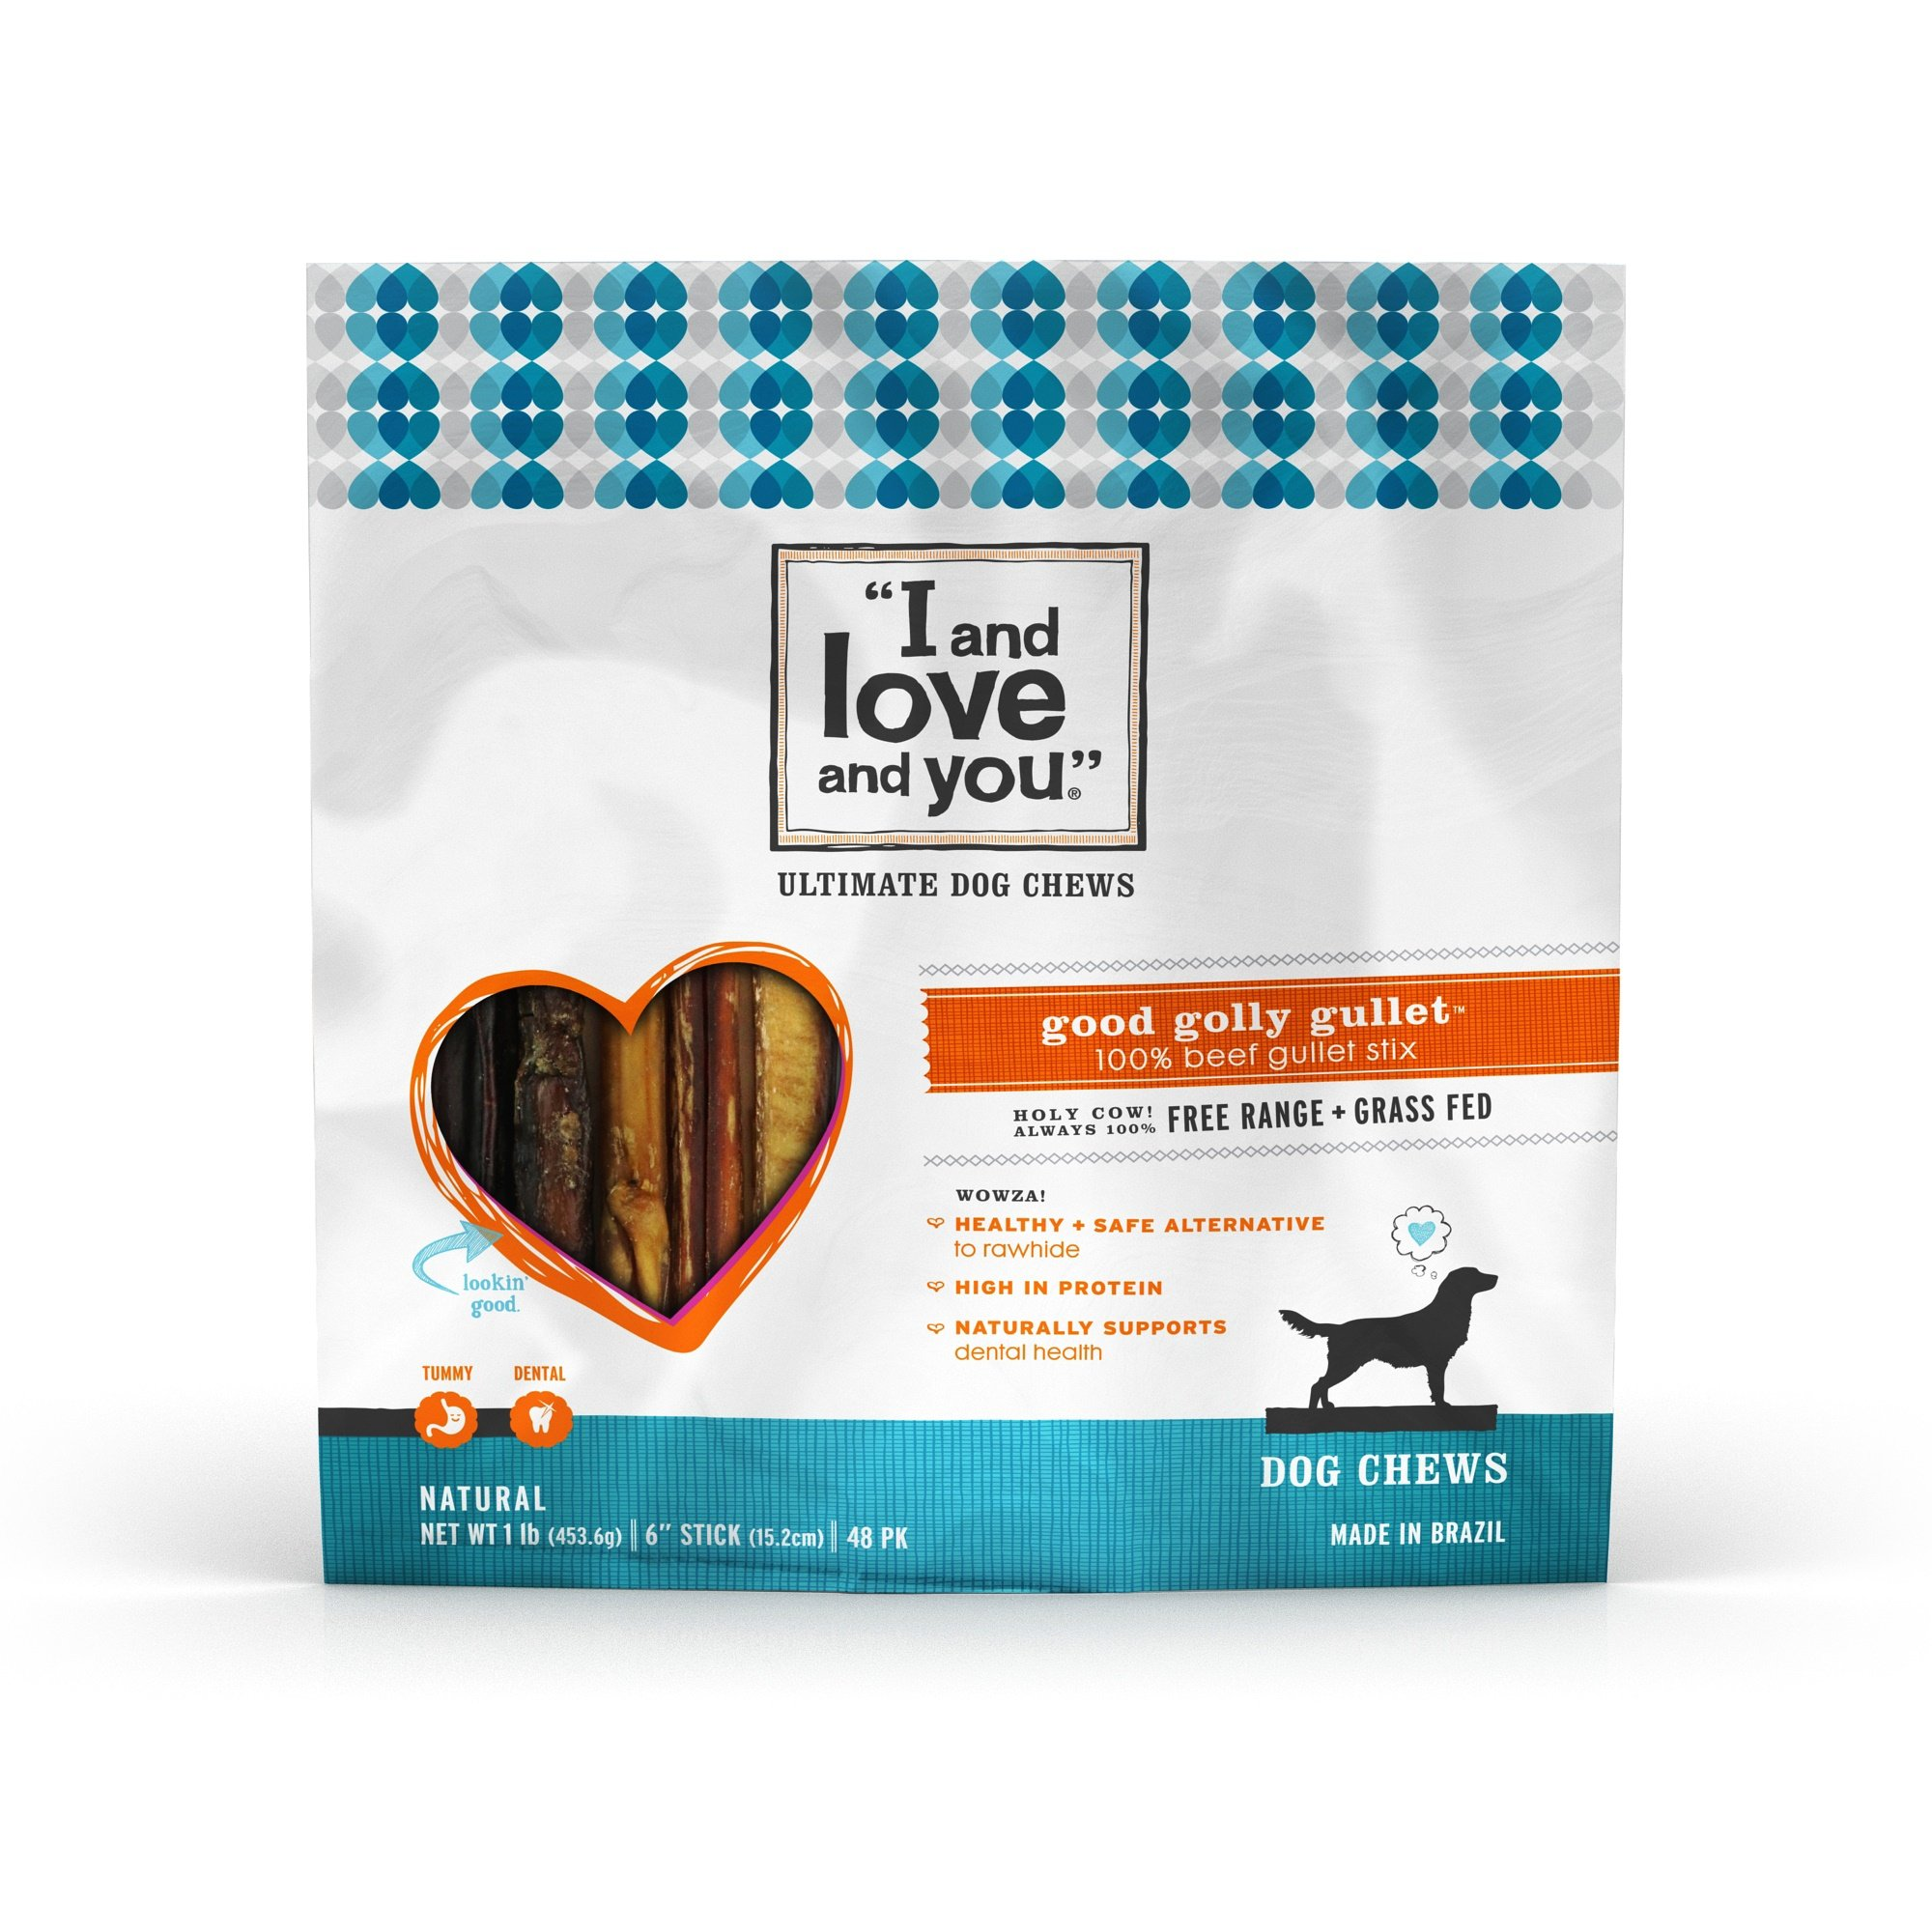 I and love and you'' Good Golly Beef Gullet Stix, 1 LB, 6 Inch Sticks